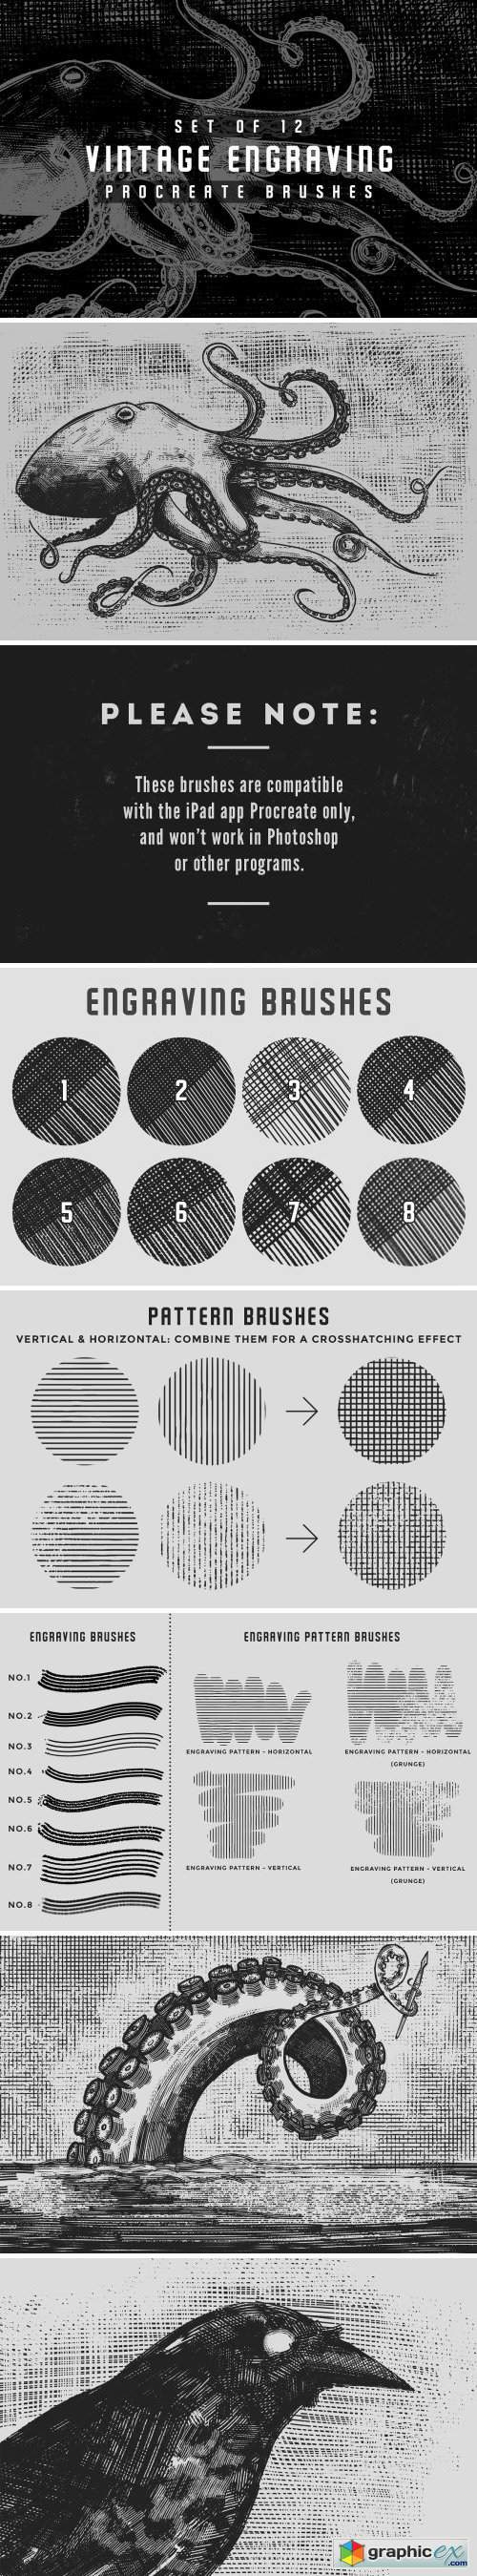 Vintage engraving Procreate brushes